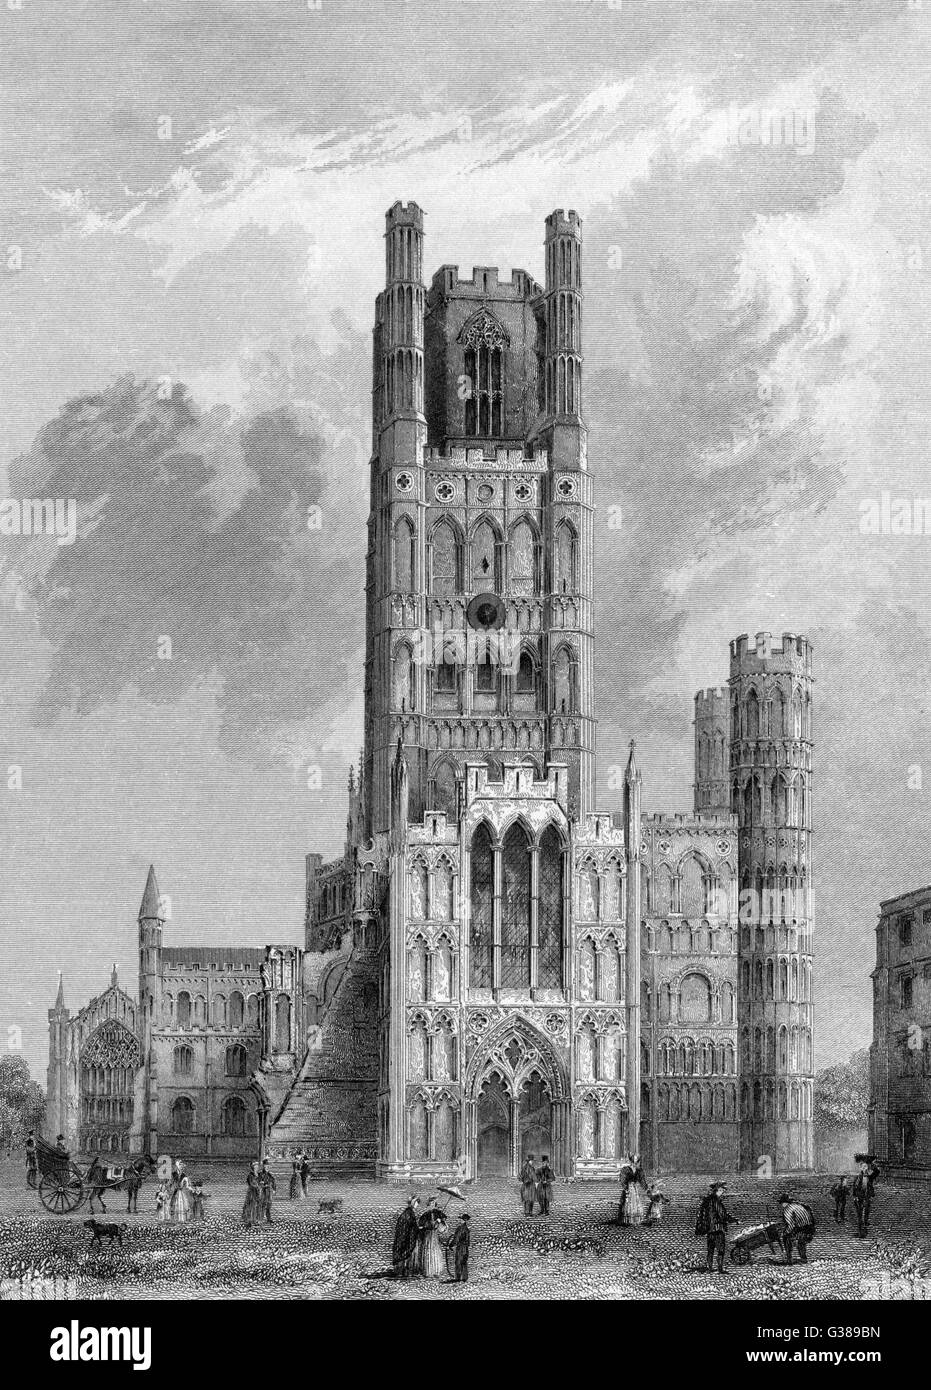 Ely Cathedral.          Date: 1836 - Stock Image